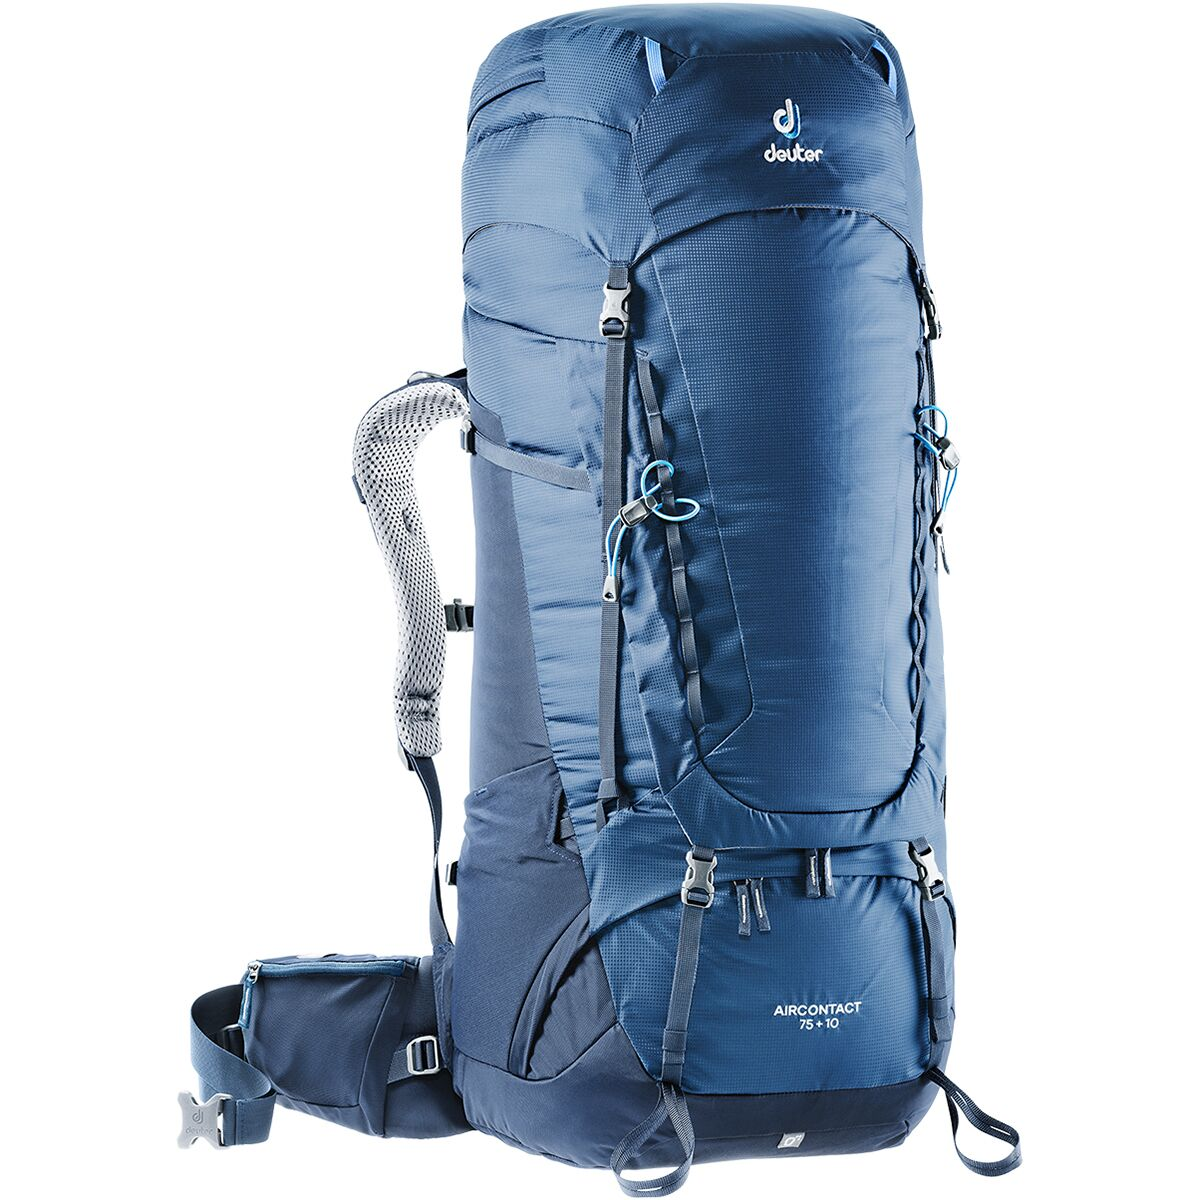 photo: Deuter Aircontact 75+10 expedition pack (70l+)